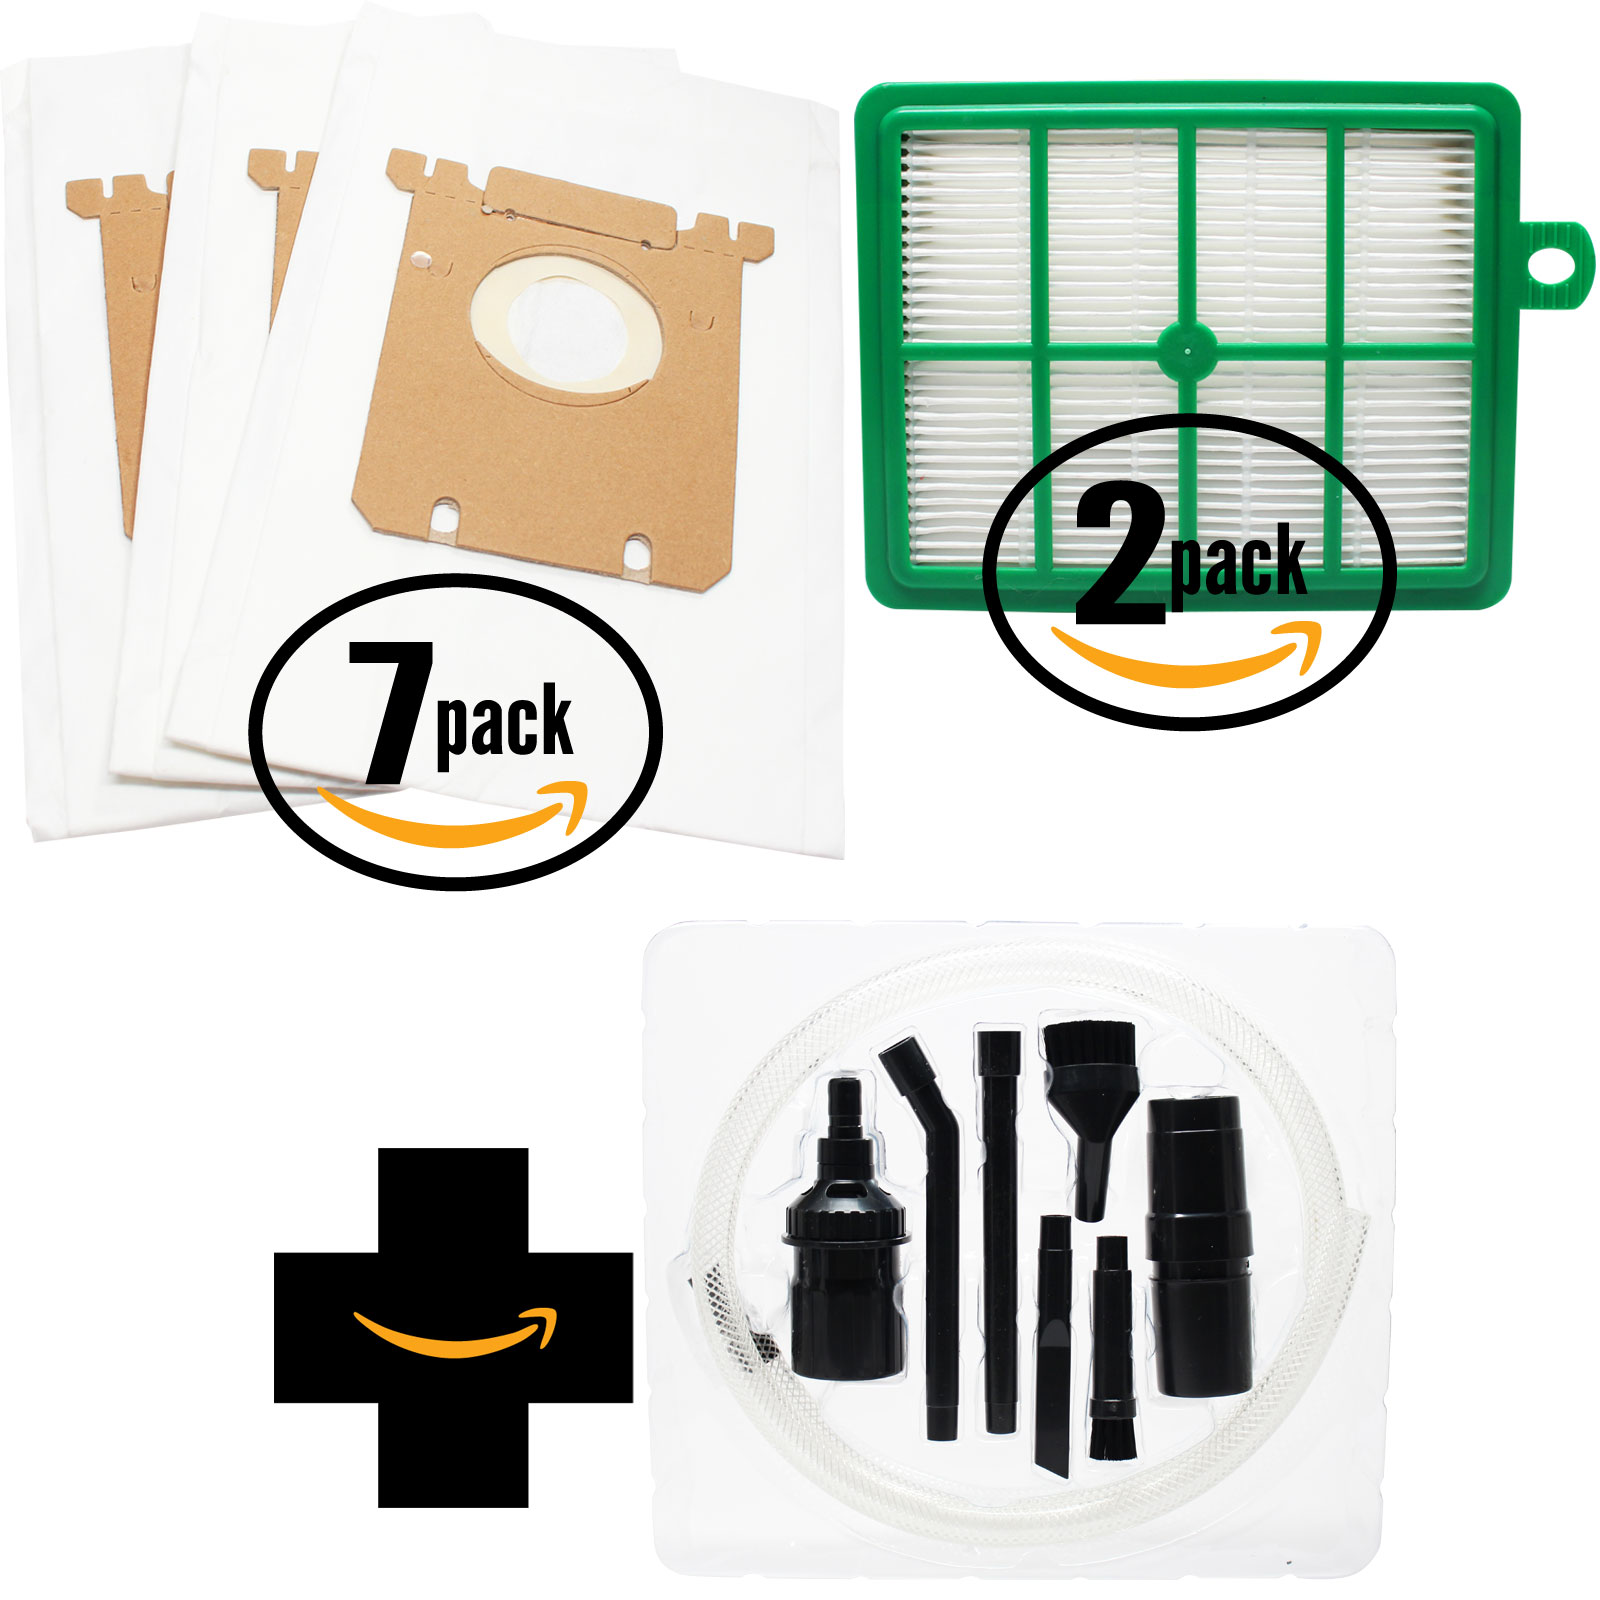 21 Replacement Electrolux EL6988A Vacuum Bags & 2 Filter with 7-Piece Micro Vacuum Attachment Kit - Compatible Electrolux S-Bag Vacuum Bag & EL012B Filter - image 4 of 4